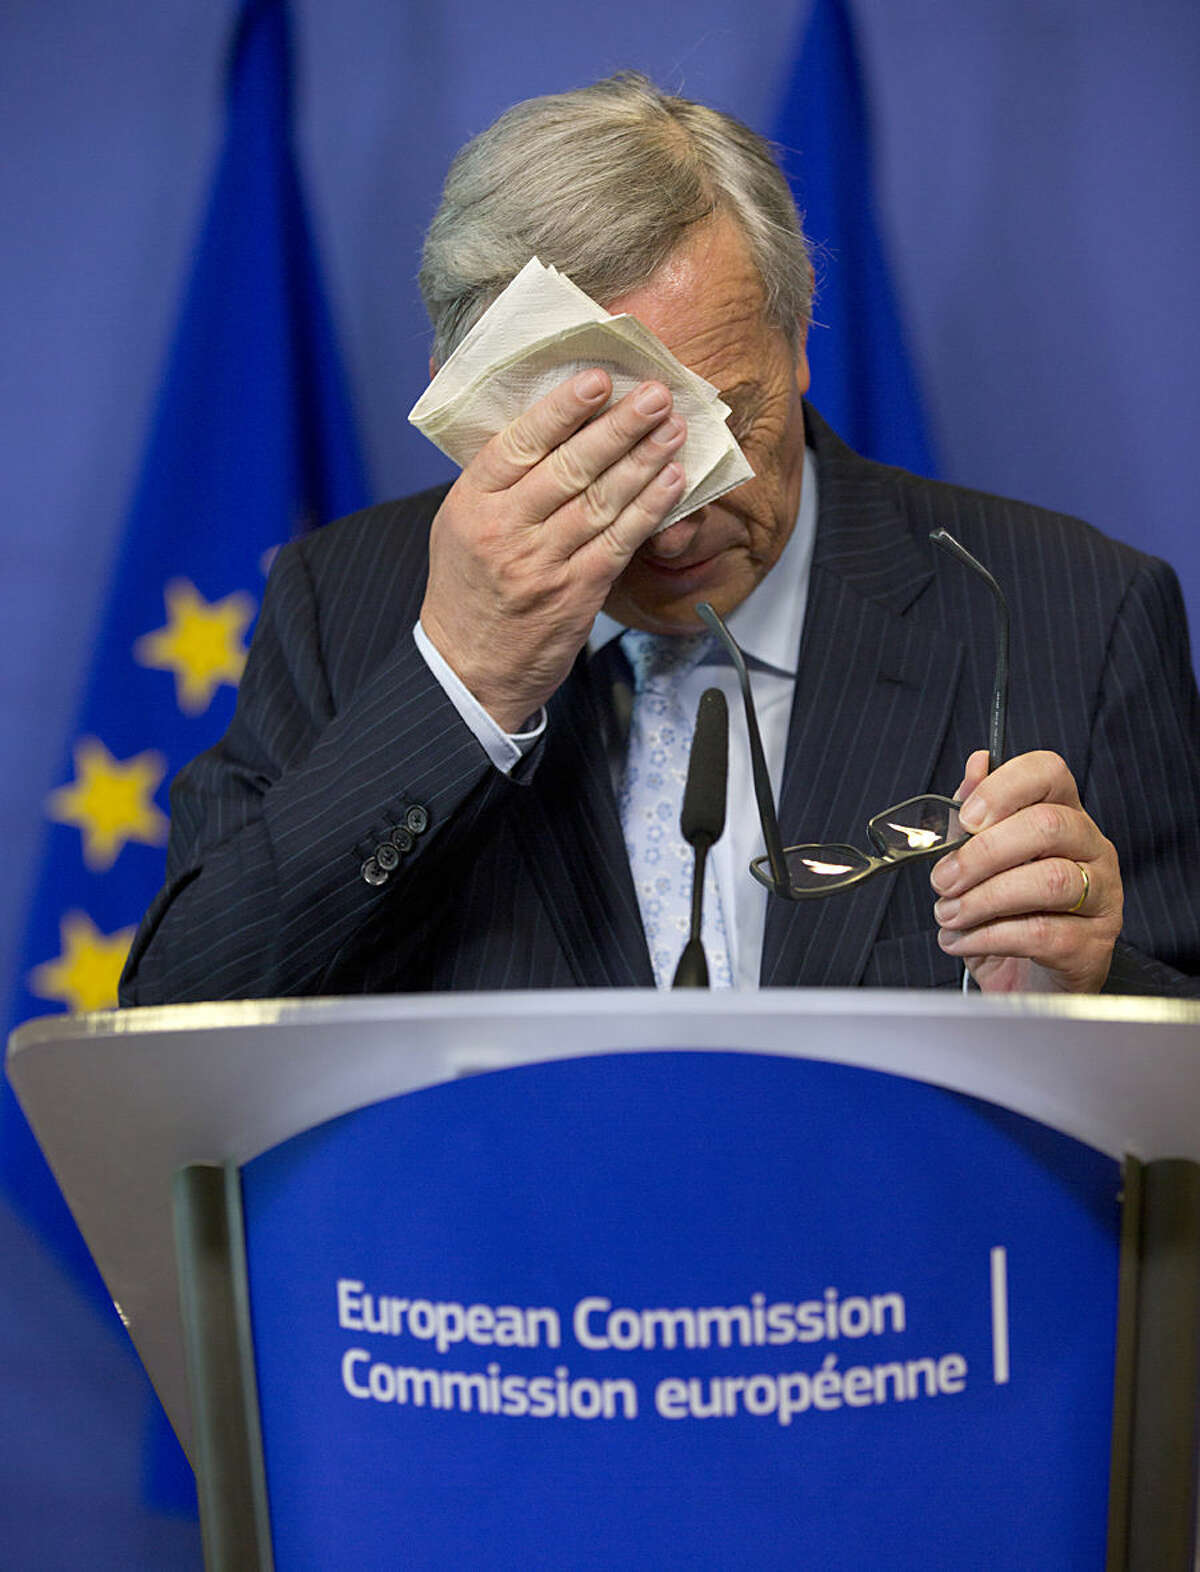 European Commission President Jean-Claude Juncker wipes his face before speaking during a media conference at EU headquarters in Brussels on Wednesday, July 1, 2015. The eurozone's finance ministers are set to weigh a last-minute Greek proposal for a new aid program, submitted Tuesday afternoon, in a conference call which will take place later on Wednesday. (AP Photo/Virginia Mayo)